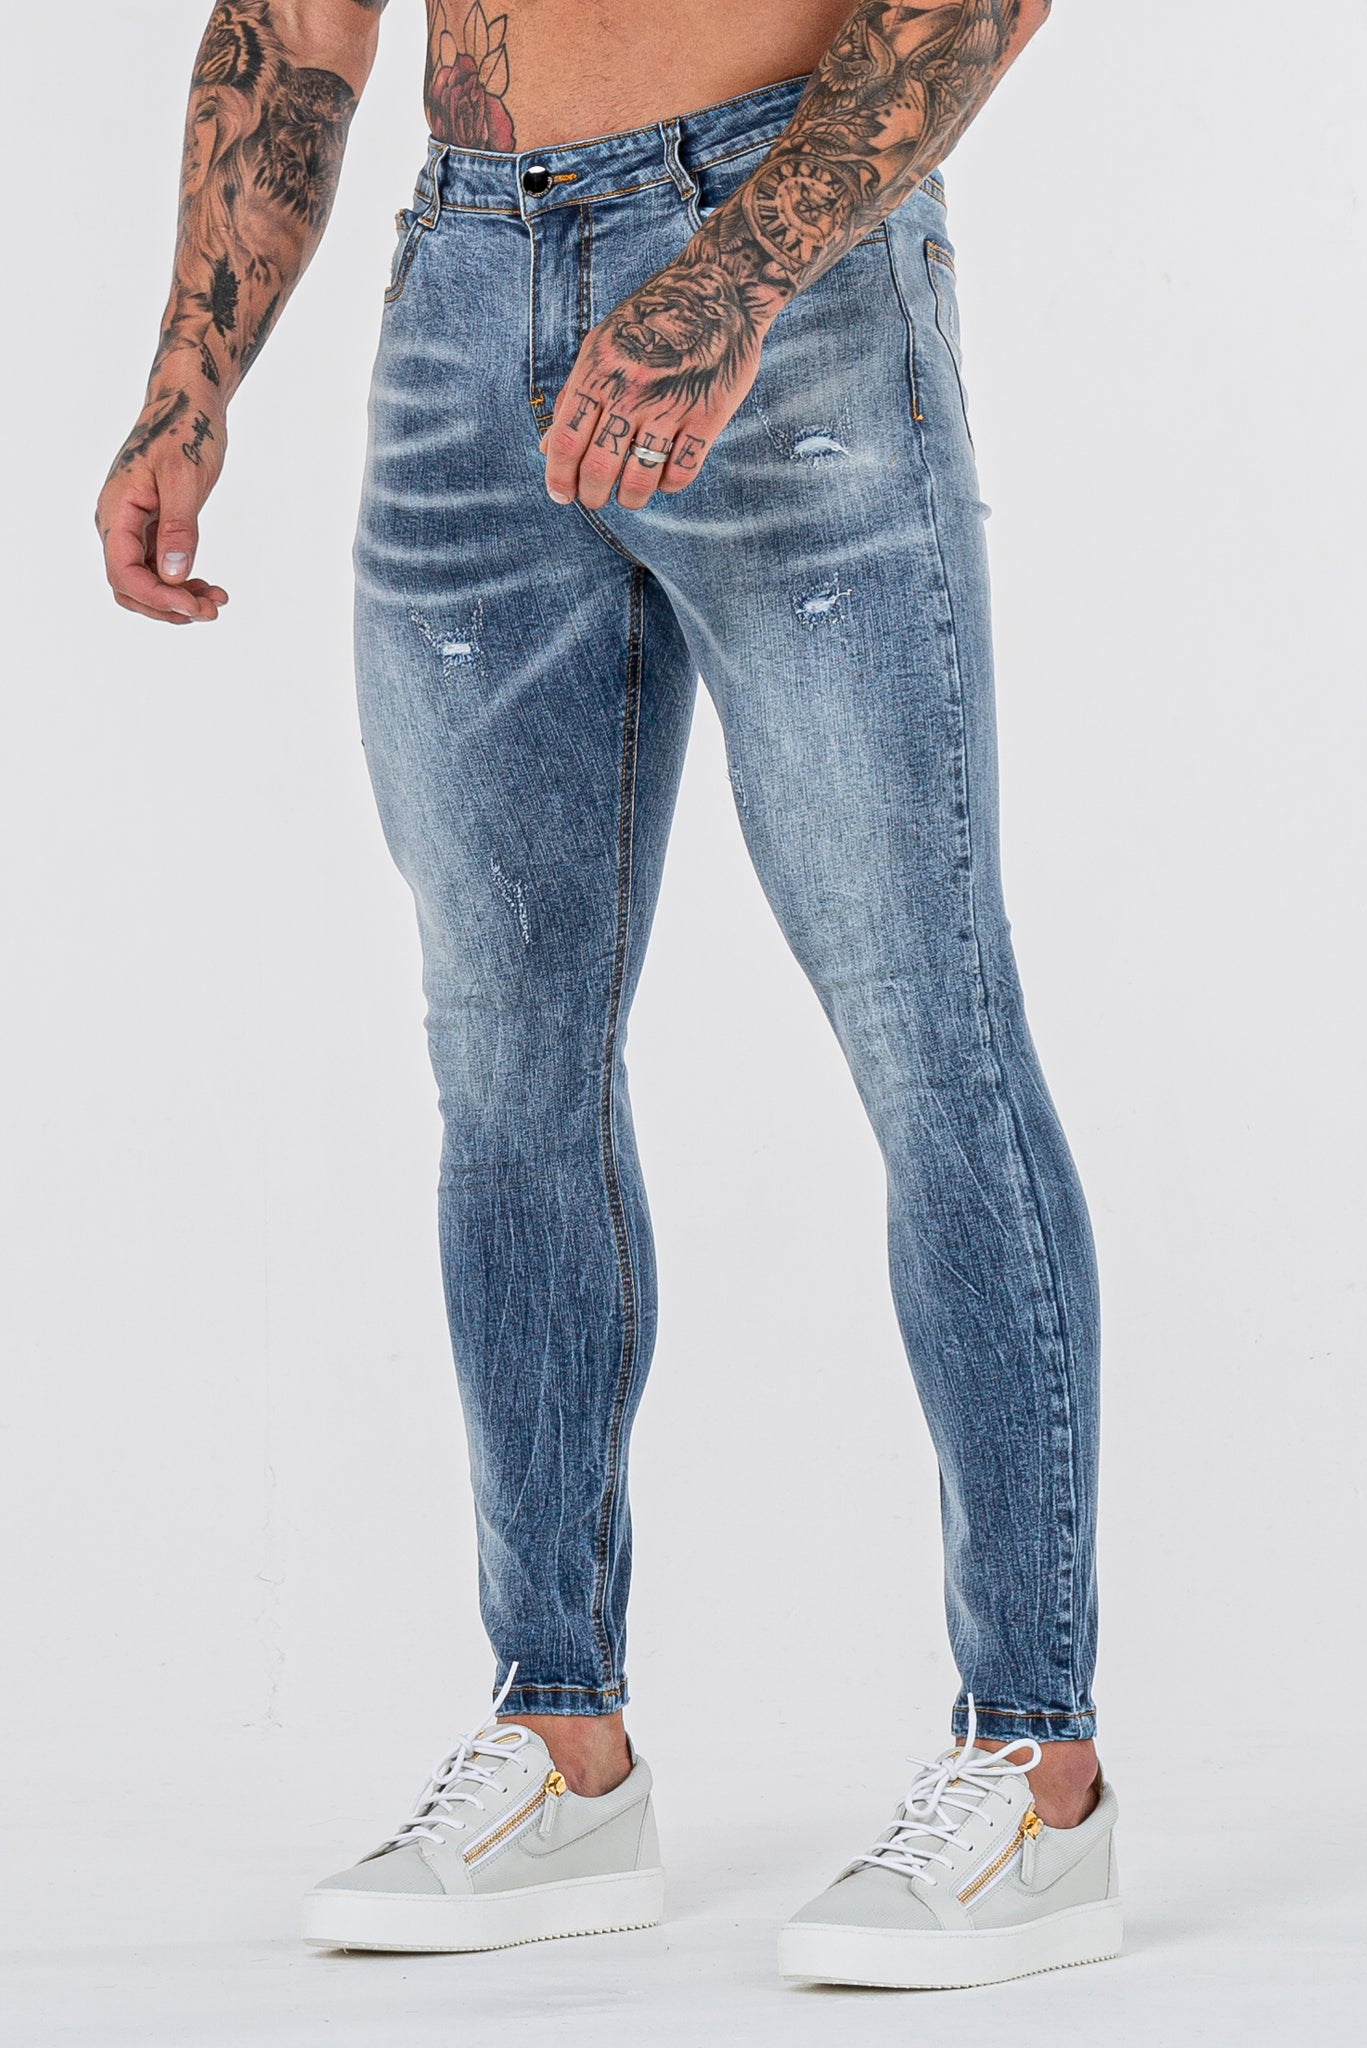 THE GATO JEANS - STEEL BLUE - ICON. AMSTERDAM